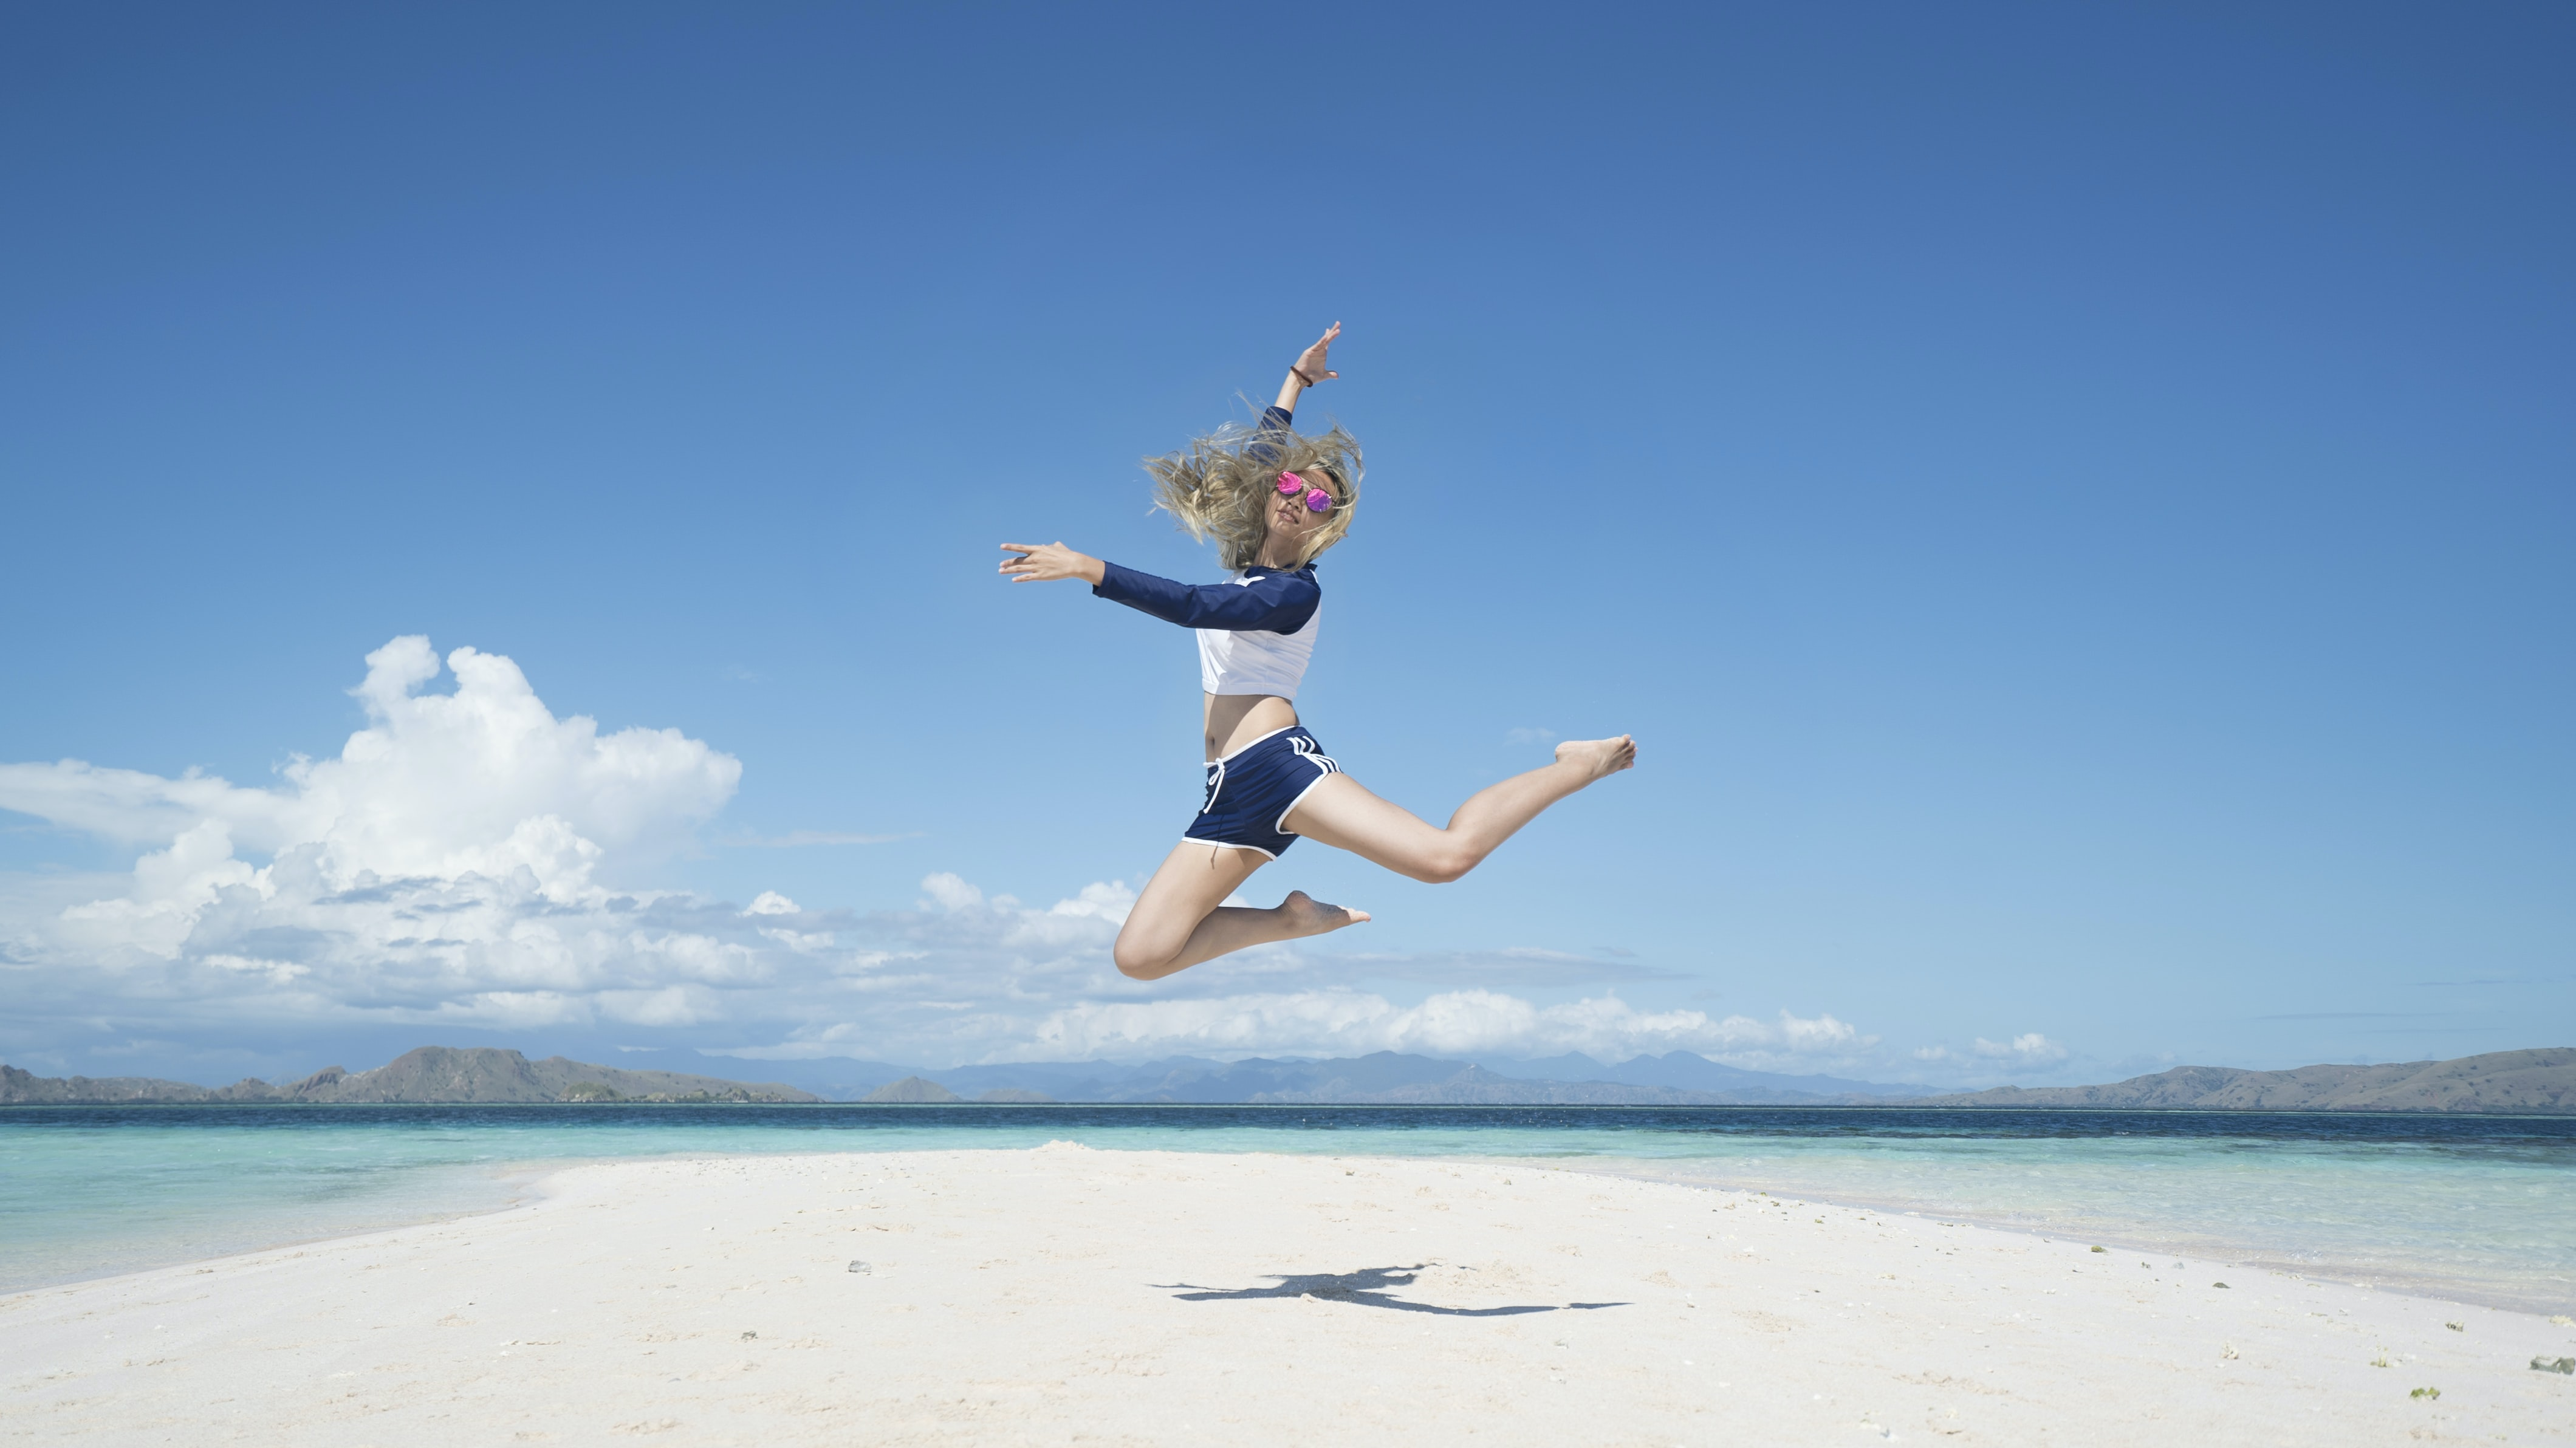 A young woman jumping high above a patch of white sand surrounded by the turquoise sea